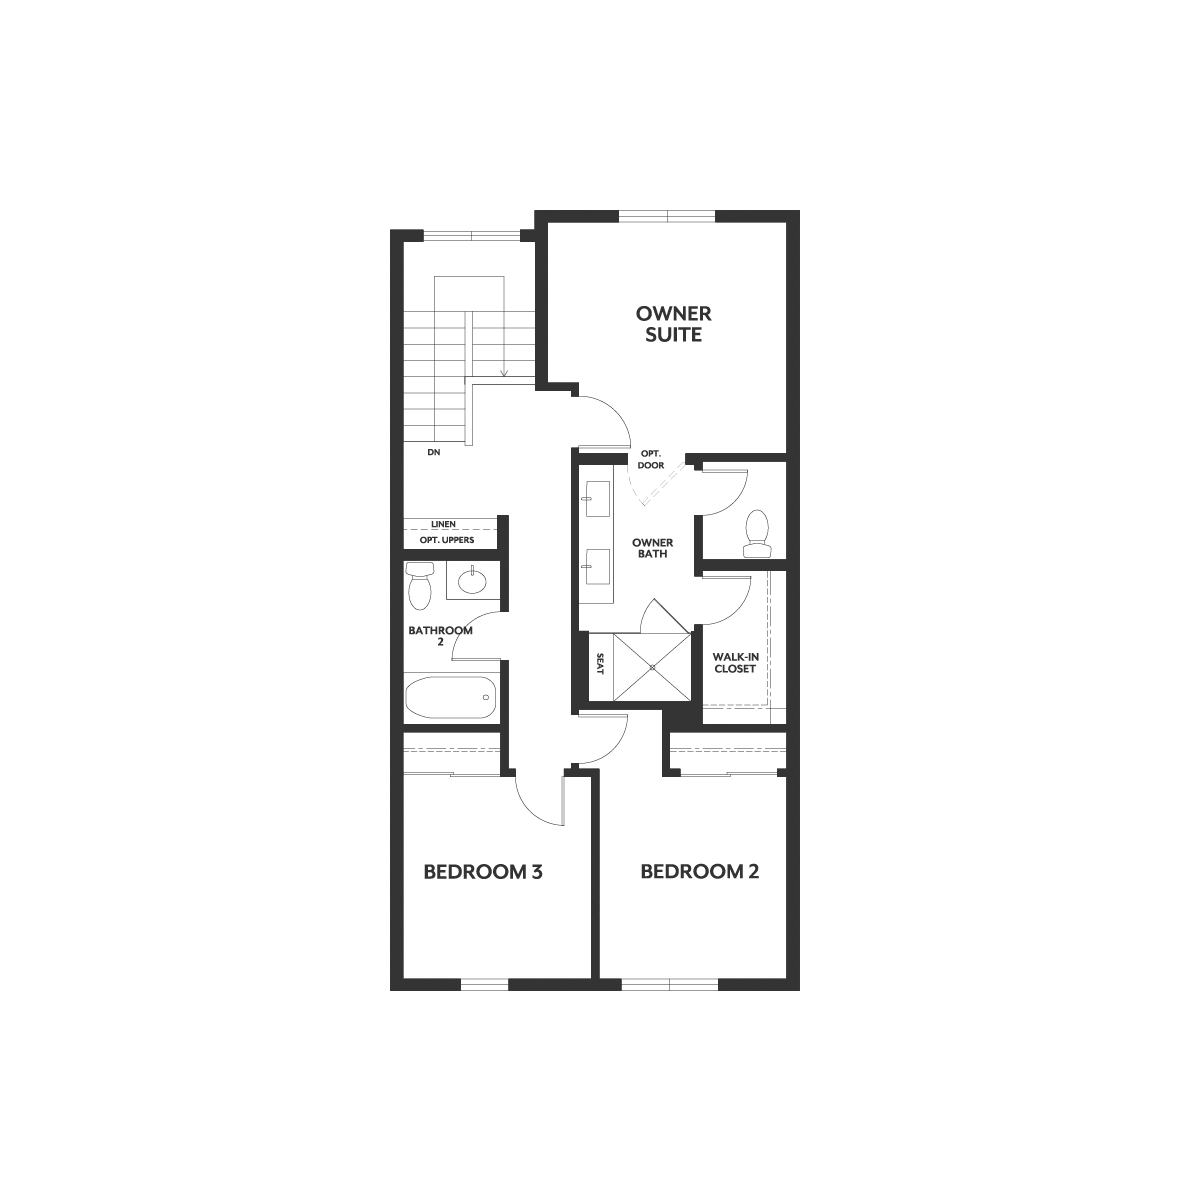 Residence 2A floor 3 plan | Wilshire at Boulevard in Dublin, CA | Brookfield Residential